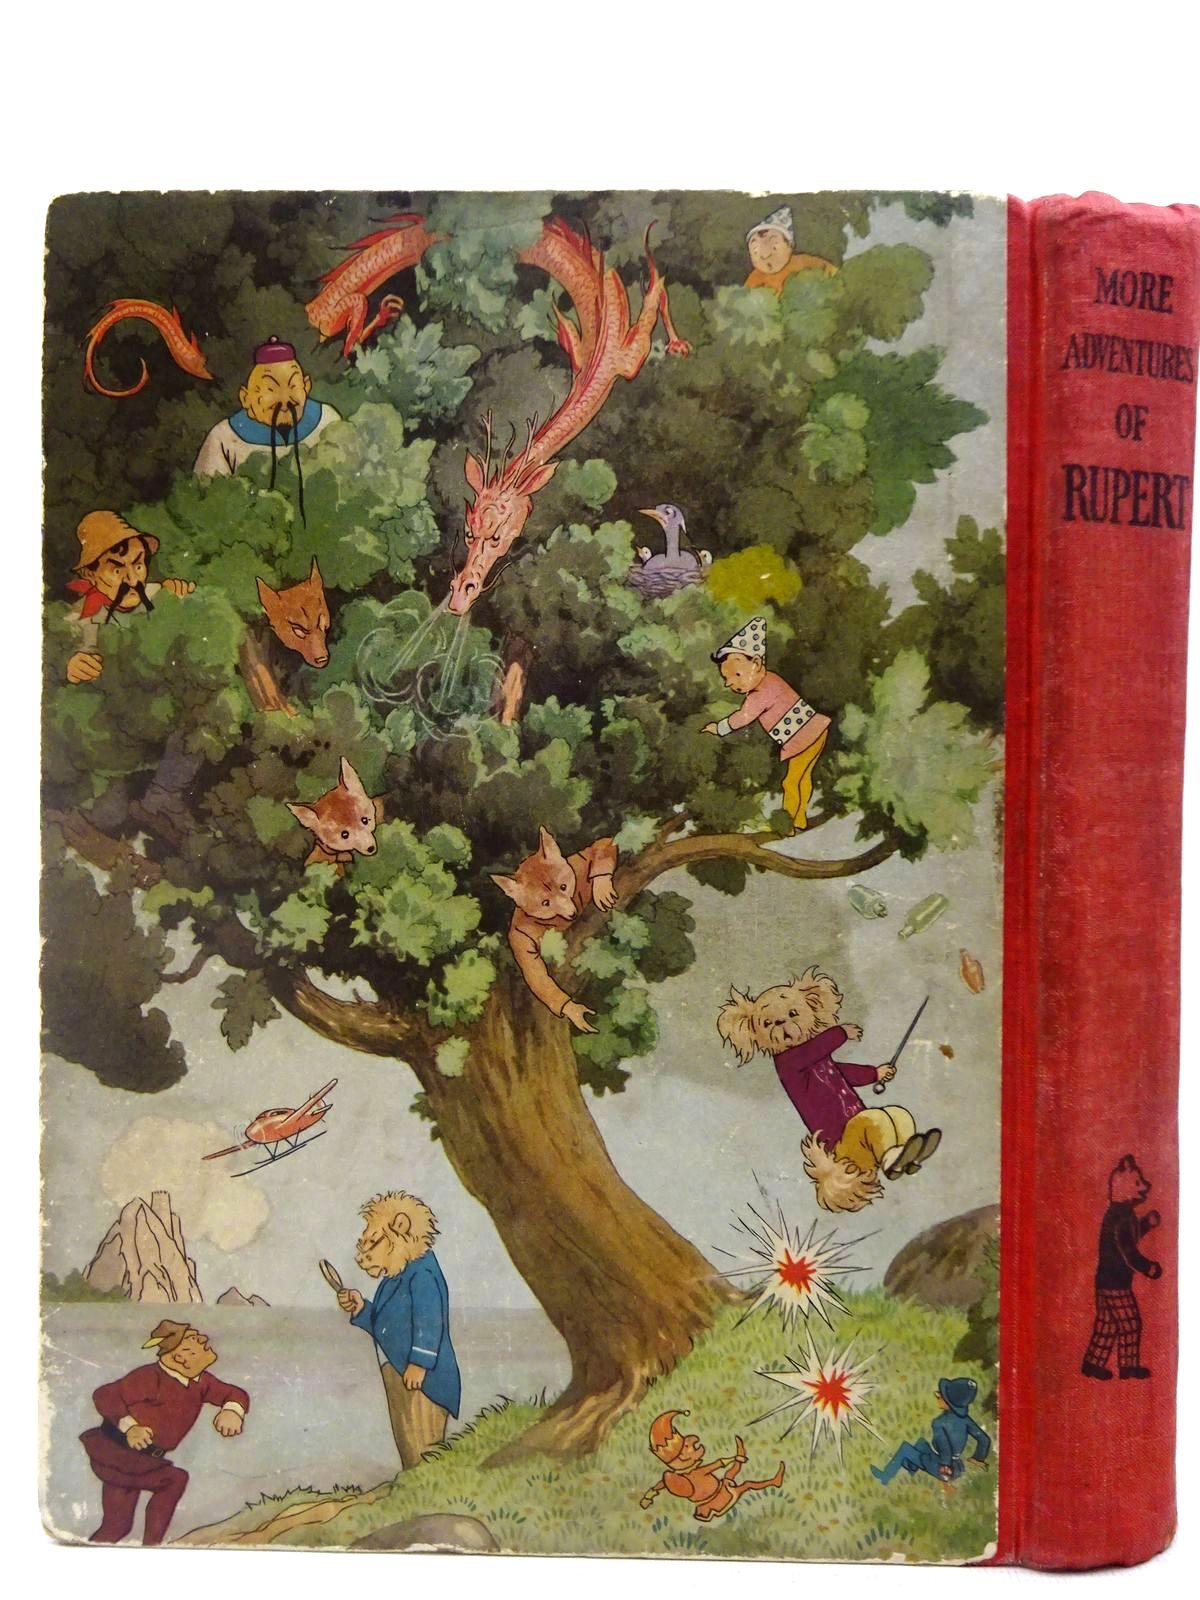 Photo of RUPERT ANNUAL 1937 - MORE ADVENTURES OF RUPERT written by Bestall, Alfred illustrated by Bestall, Alfred published by Daily Express (STOCK CODE: 2127763)  for sale by Stella & Rose's Books